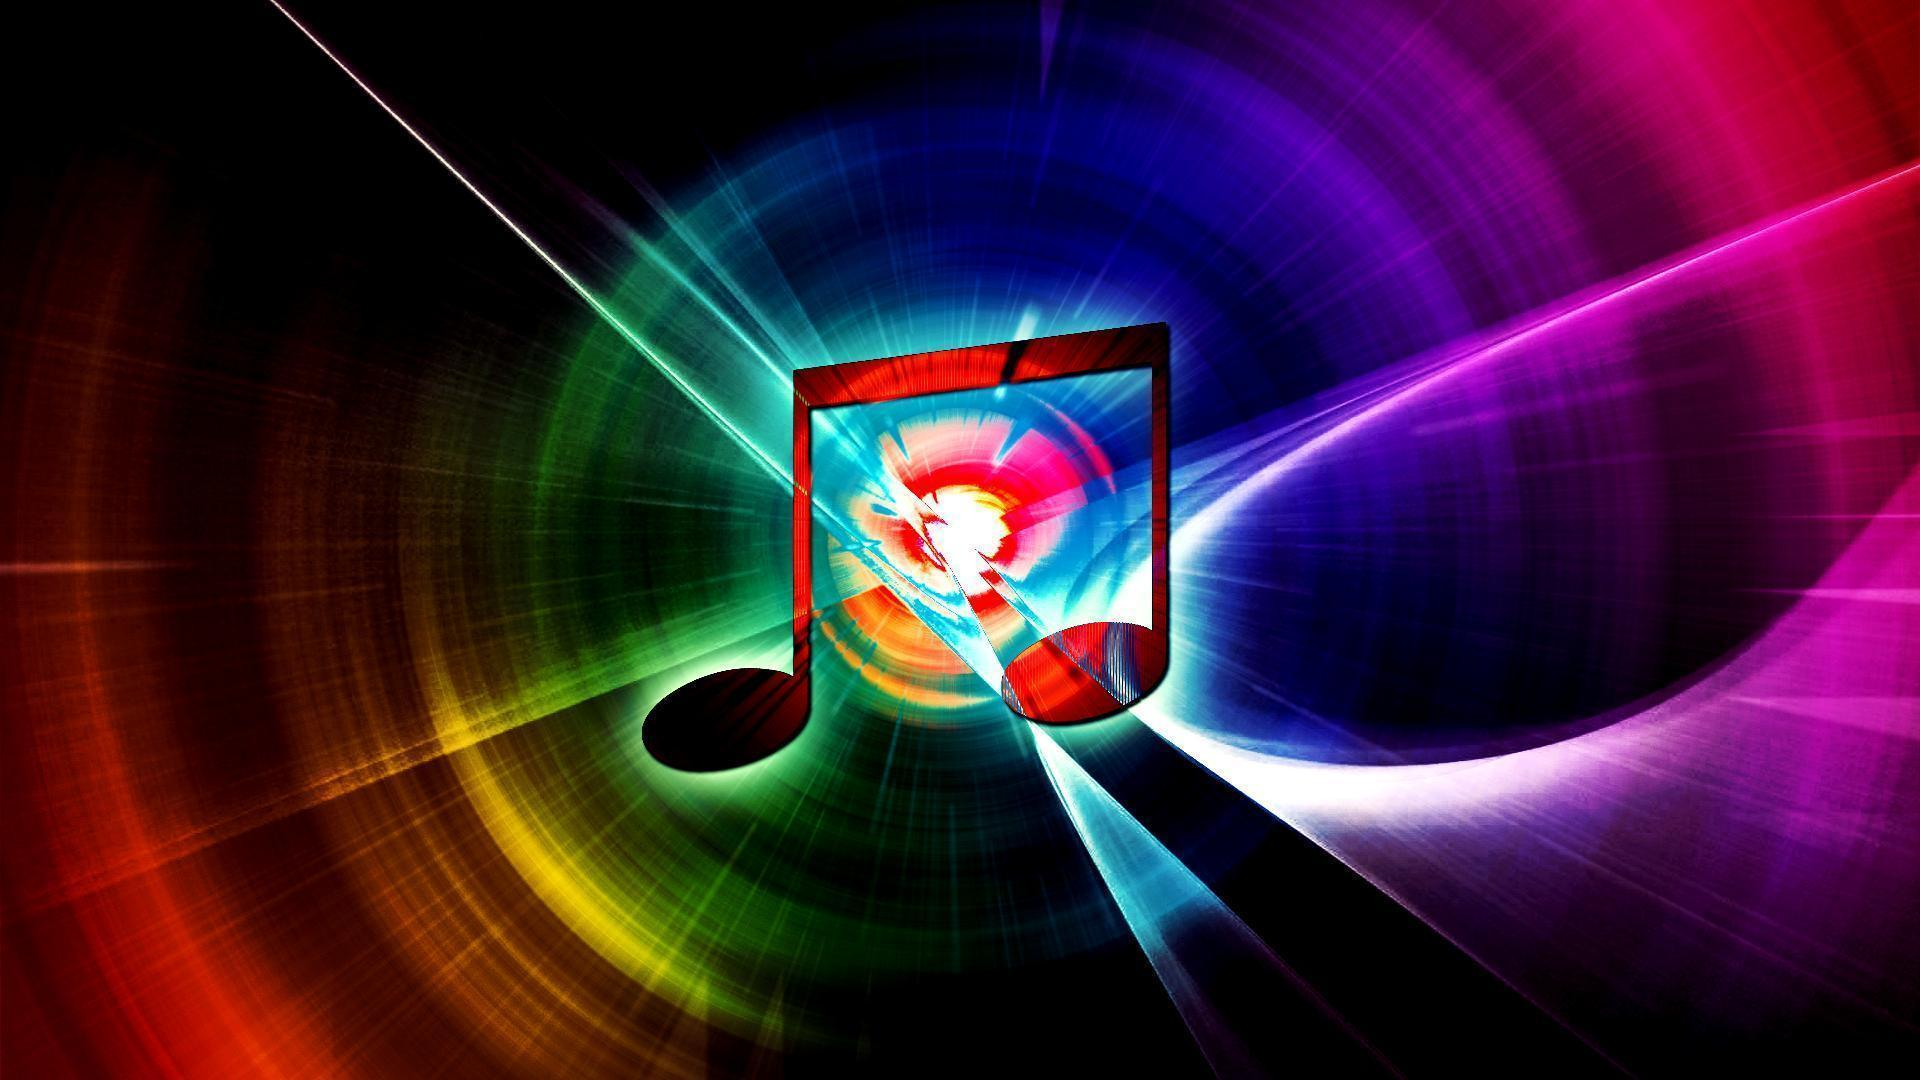 Rainbow Music Wallpaper Raven9000111 Request By Hardii: Music Pictures Wallpapers